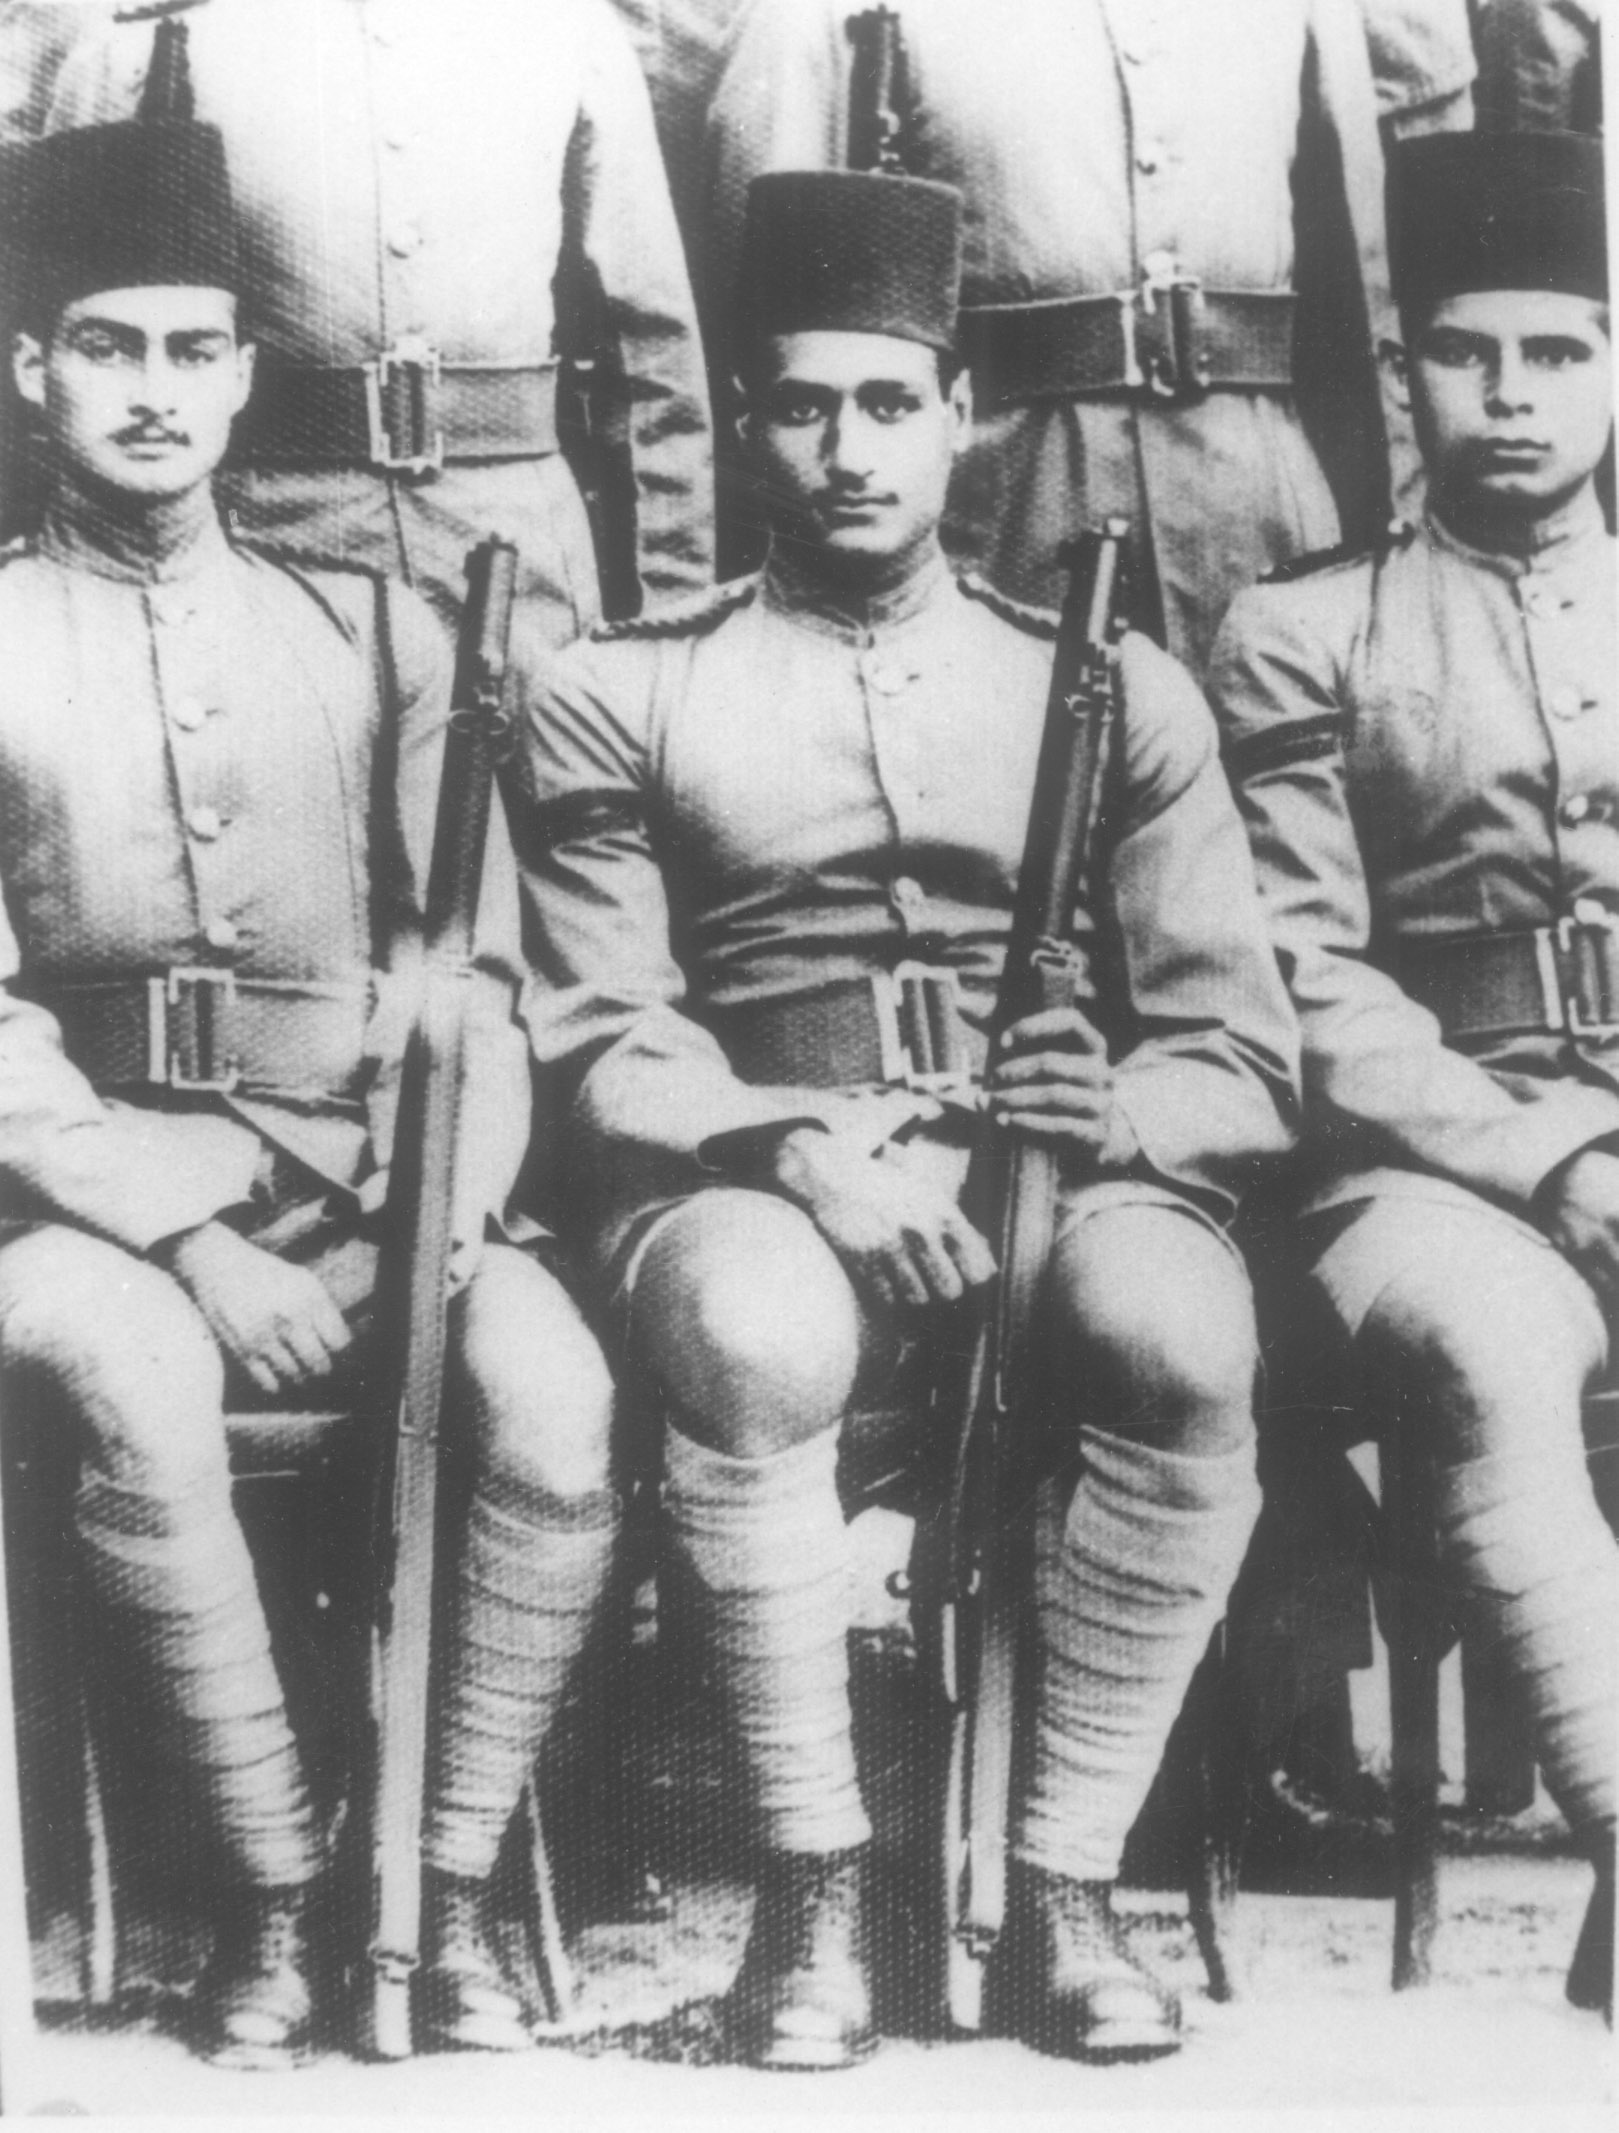 Two seated men in military uniform and wearing fez hats